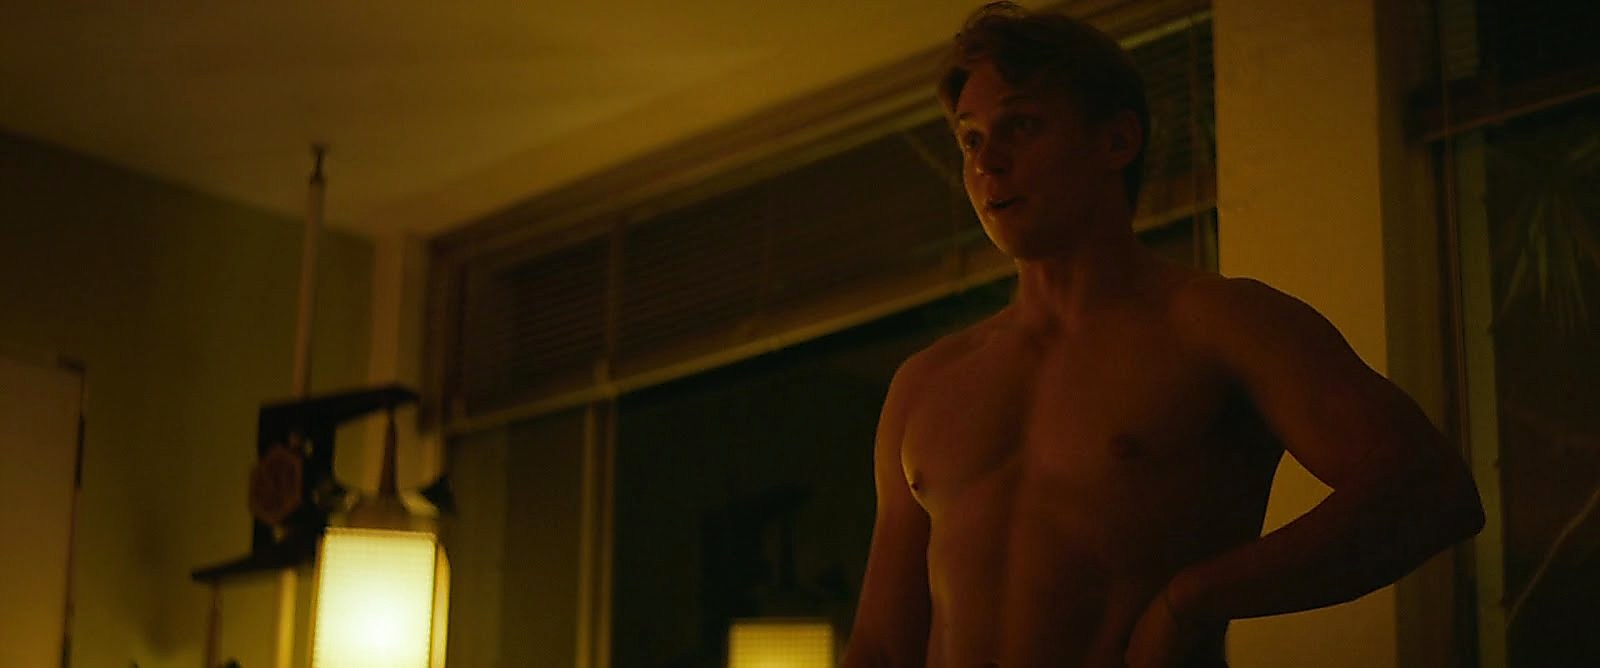 Billy Magnussen sexy shirtless scene October 24, 2017, 1pm